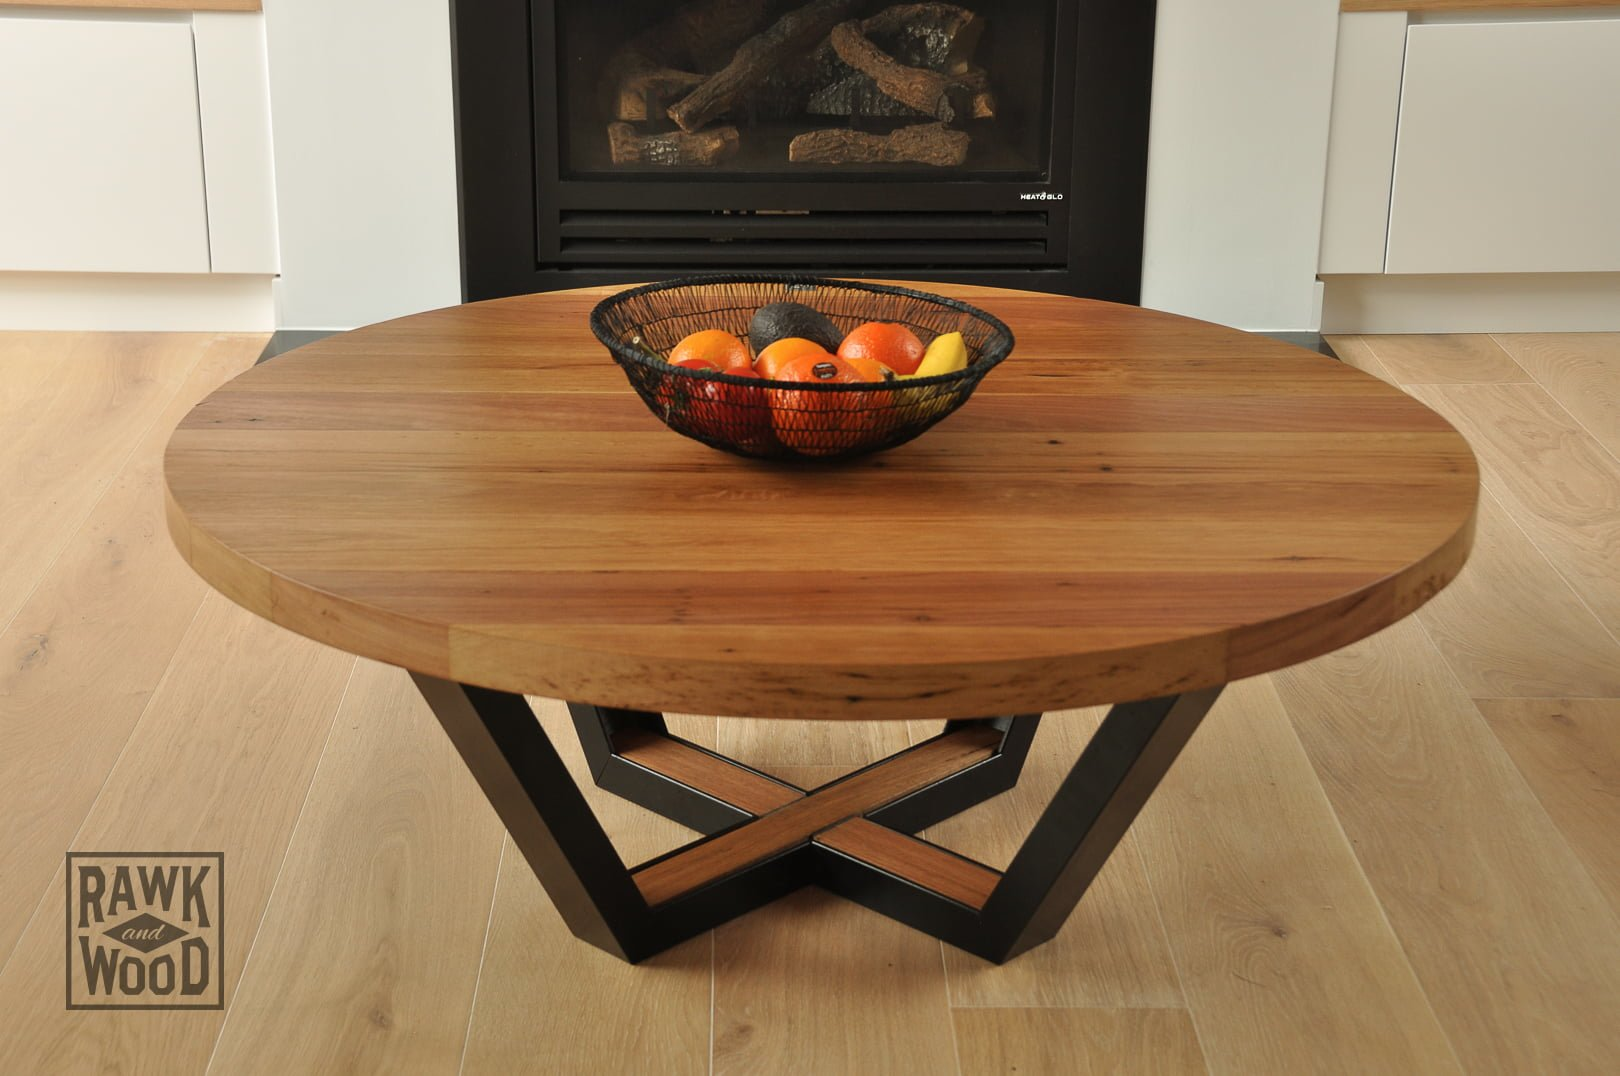 Recycled-Timber-Coffee-Table, made in Melbourne by Rawk and Wood